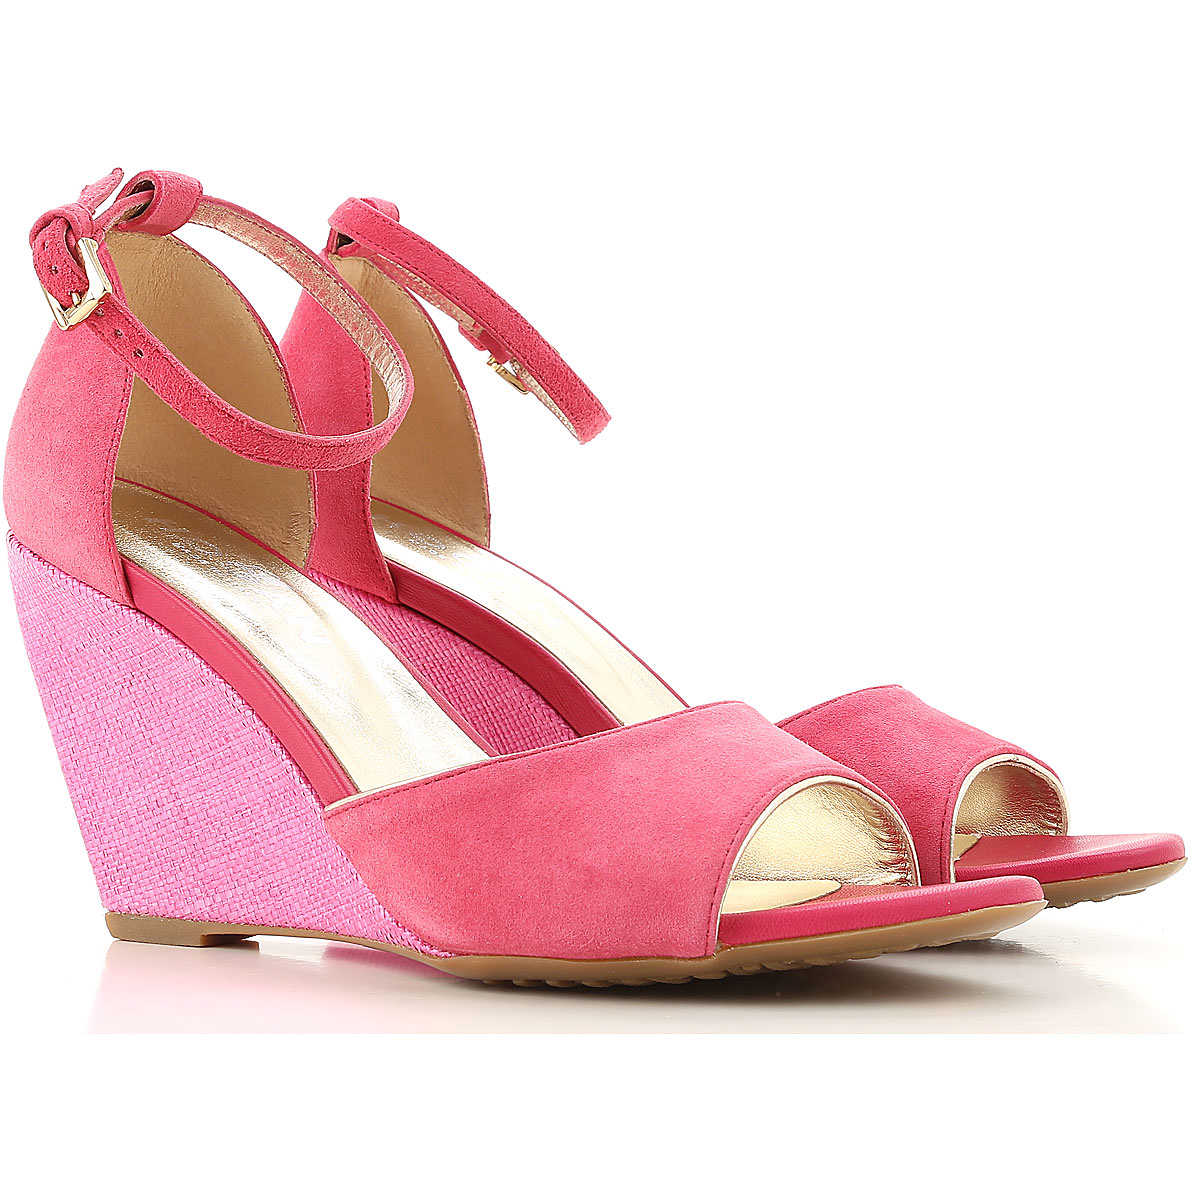 Hogan Wedges for Women On Sale in Outlet Carmine DK - GOOFASH - Womens HOUSE SHOES